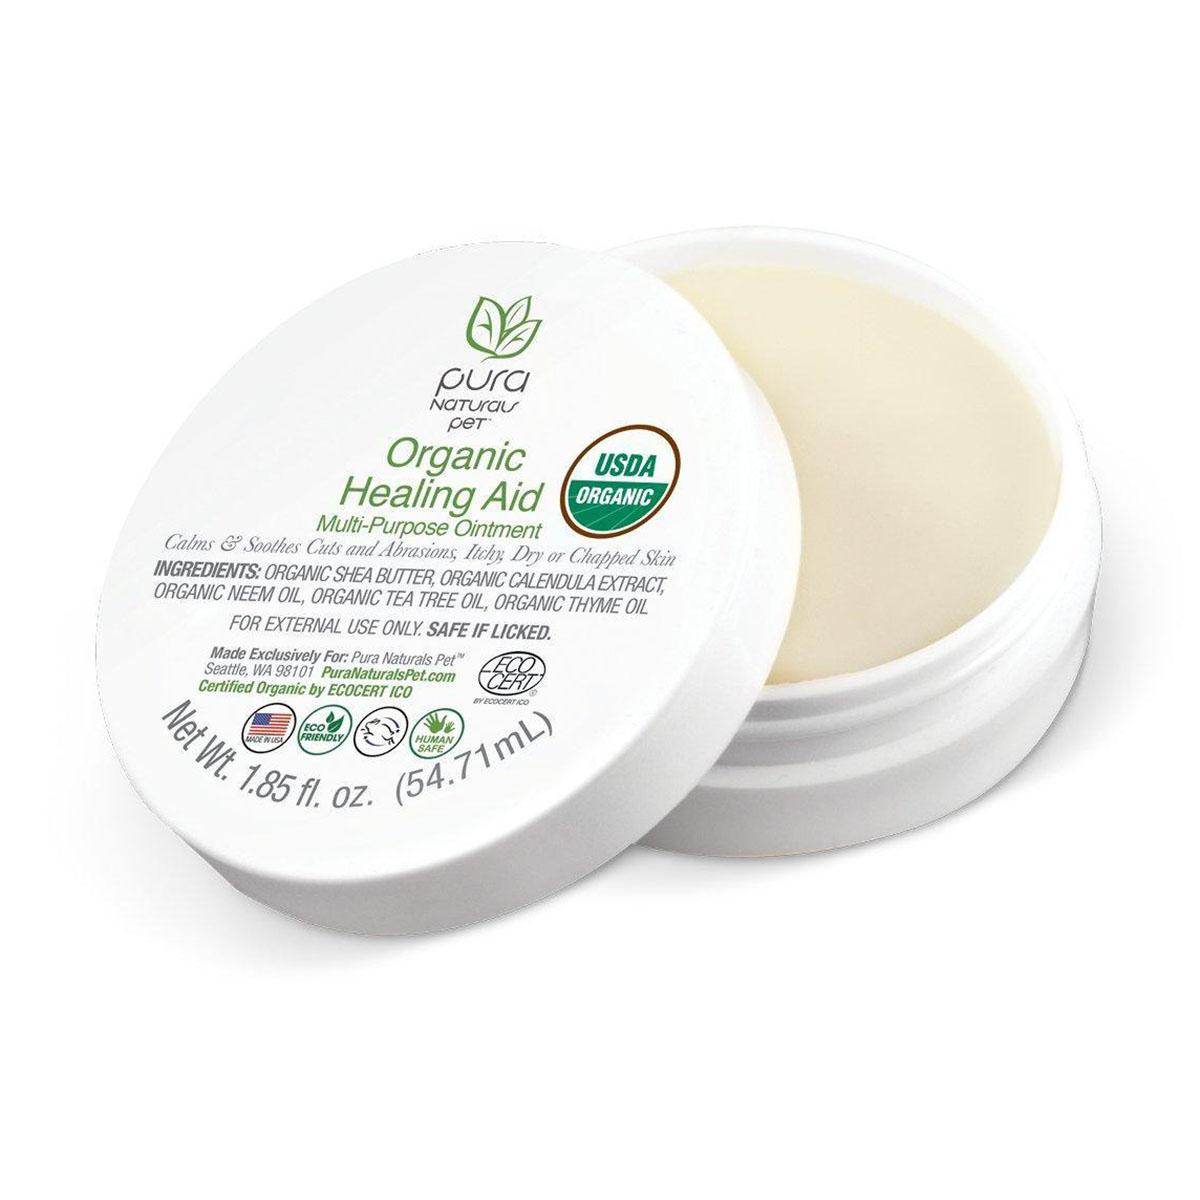 Pure and Natural Pet Organic Healing Aid Multi-Purpose Ointment for Dogs